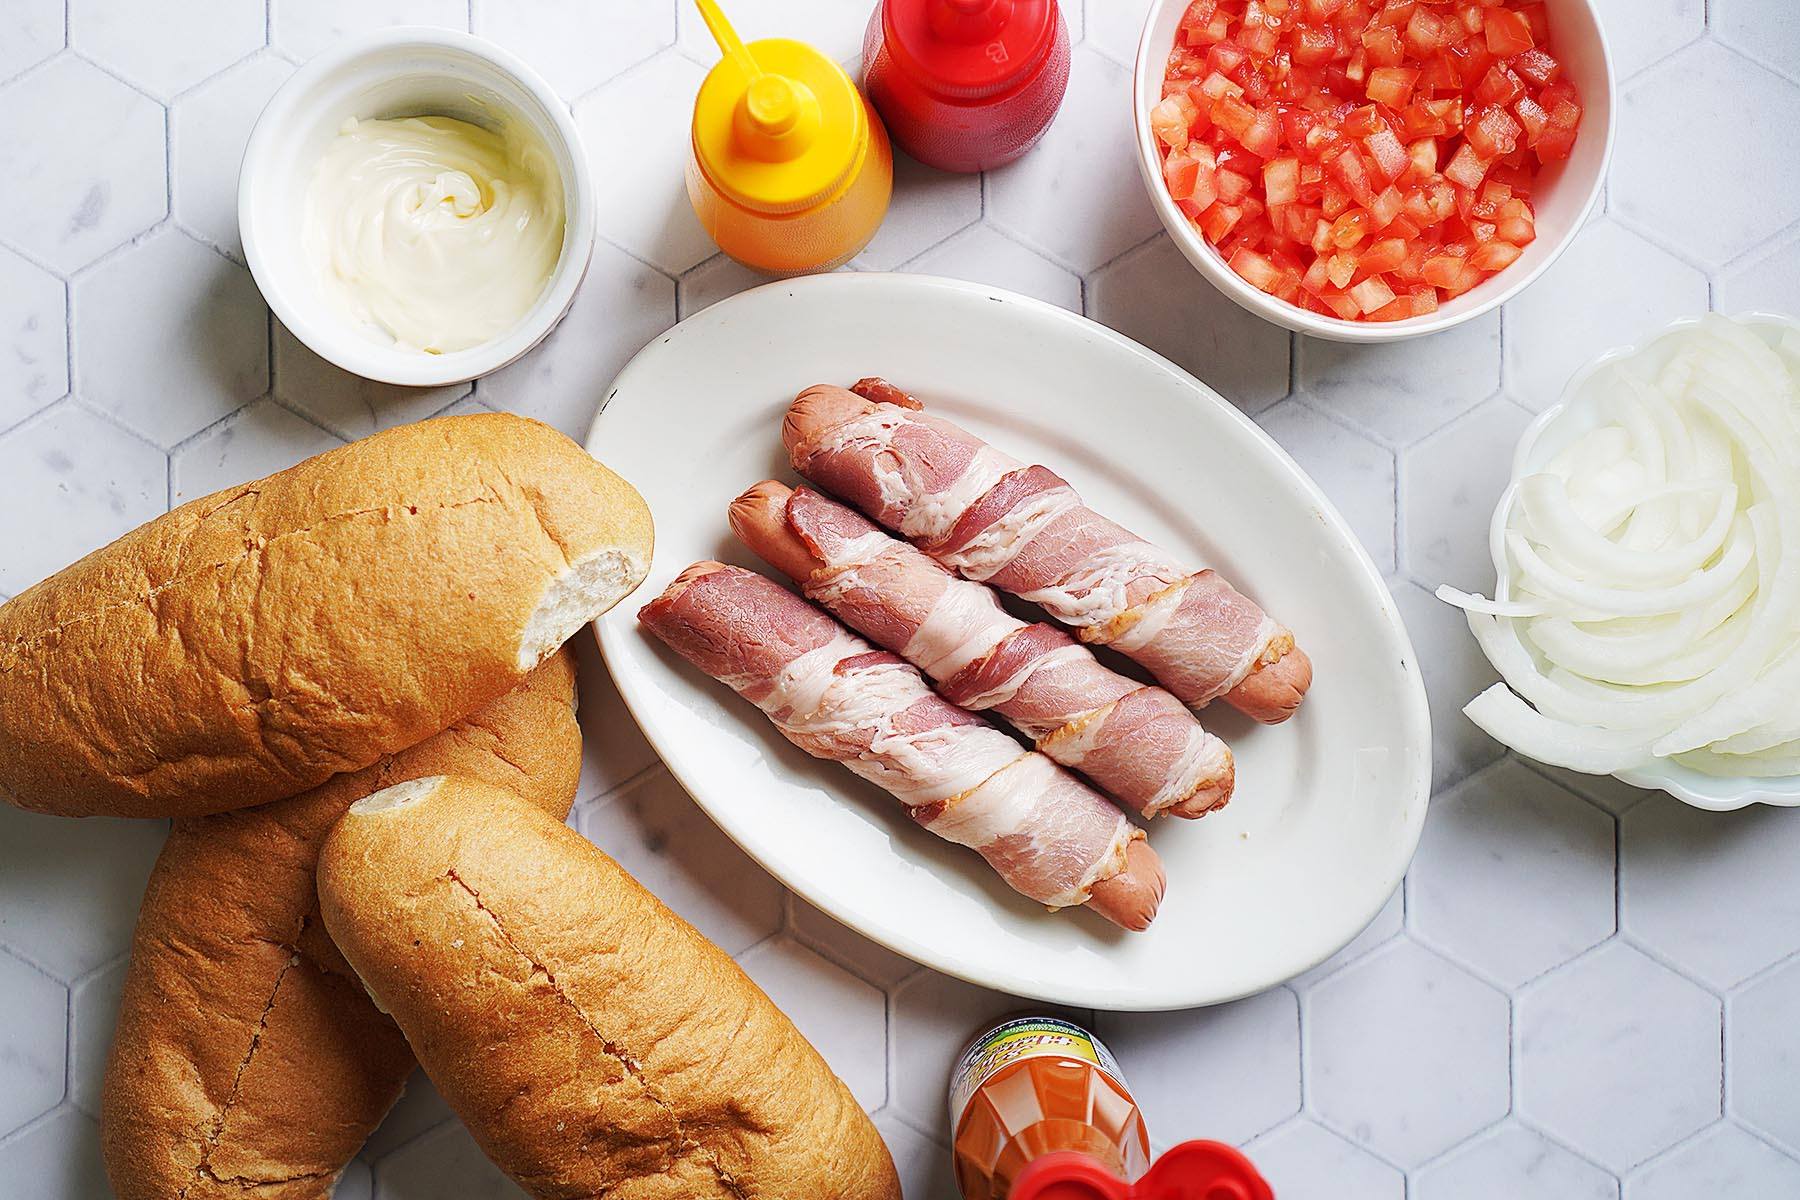 Hot Dogs ingredients on a board: buns, dogs wrapped in bacon, sliced onions, chopped tomatoes, mayo and mustard.